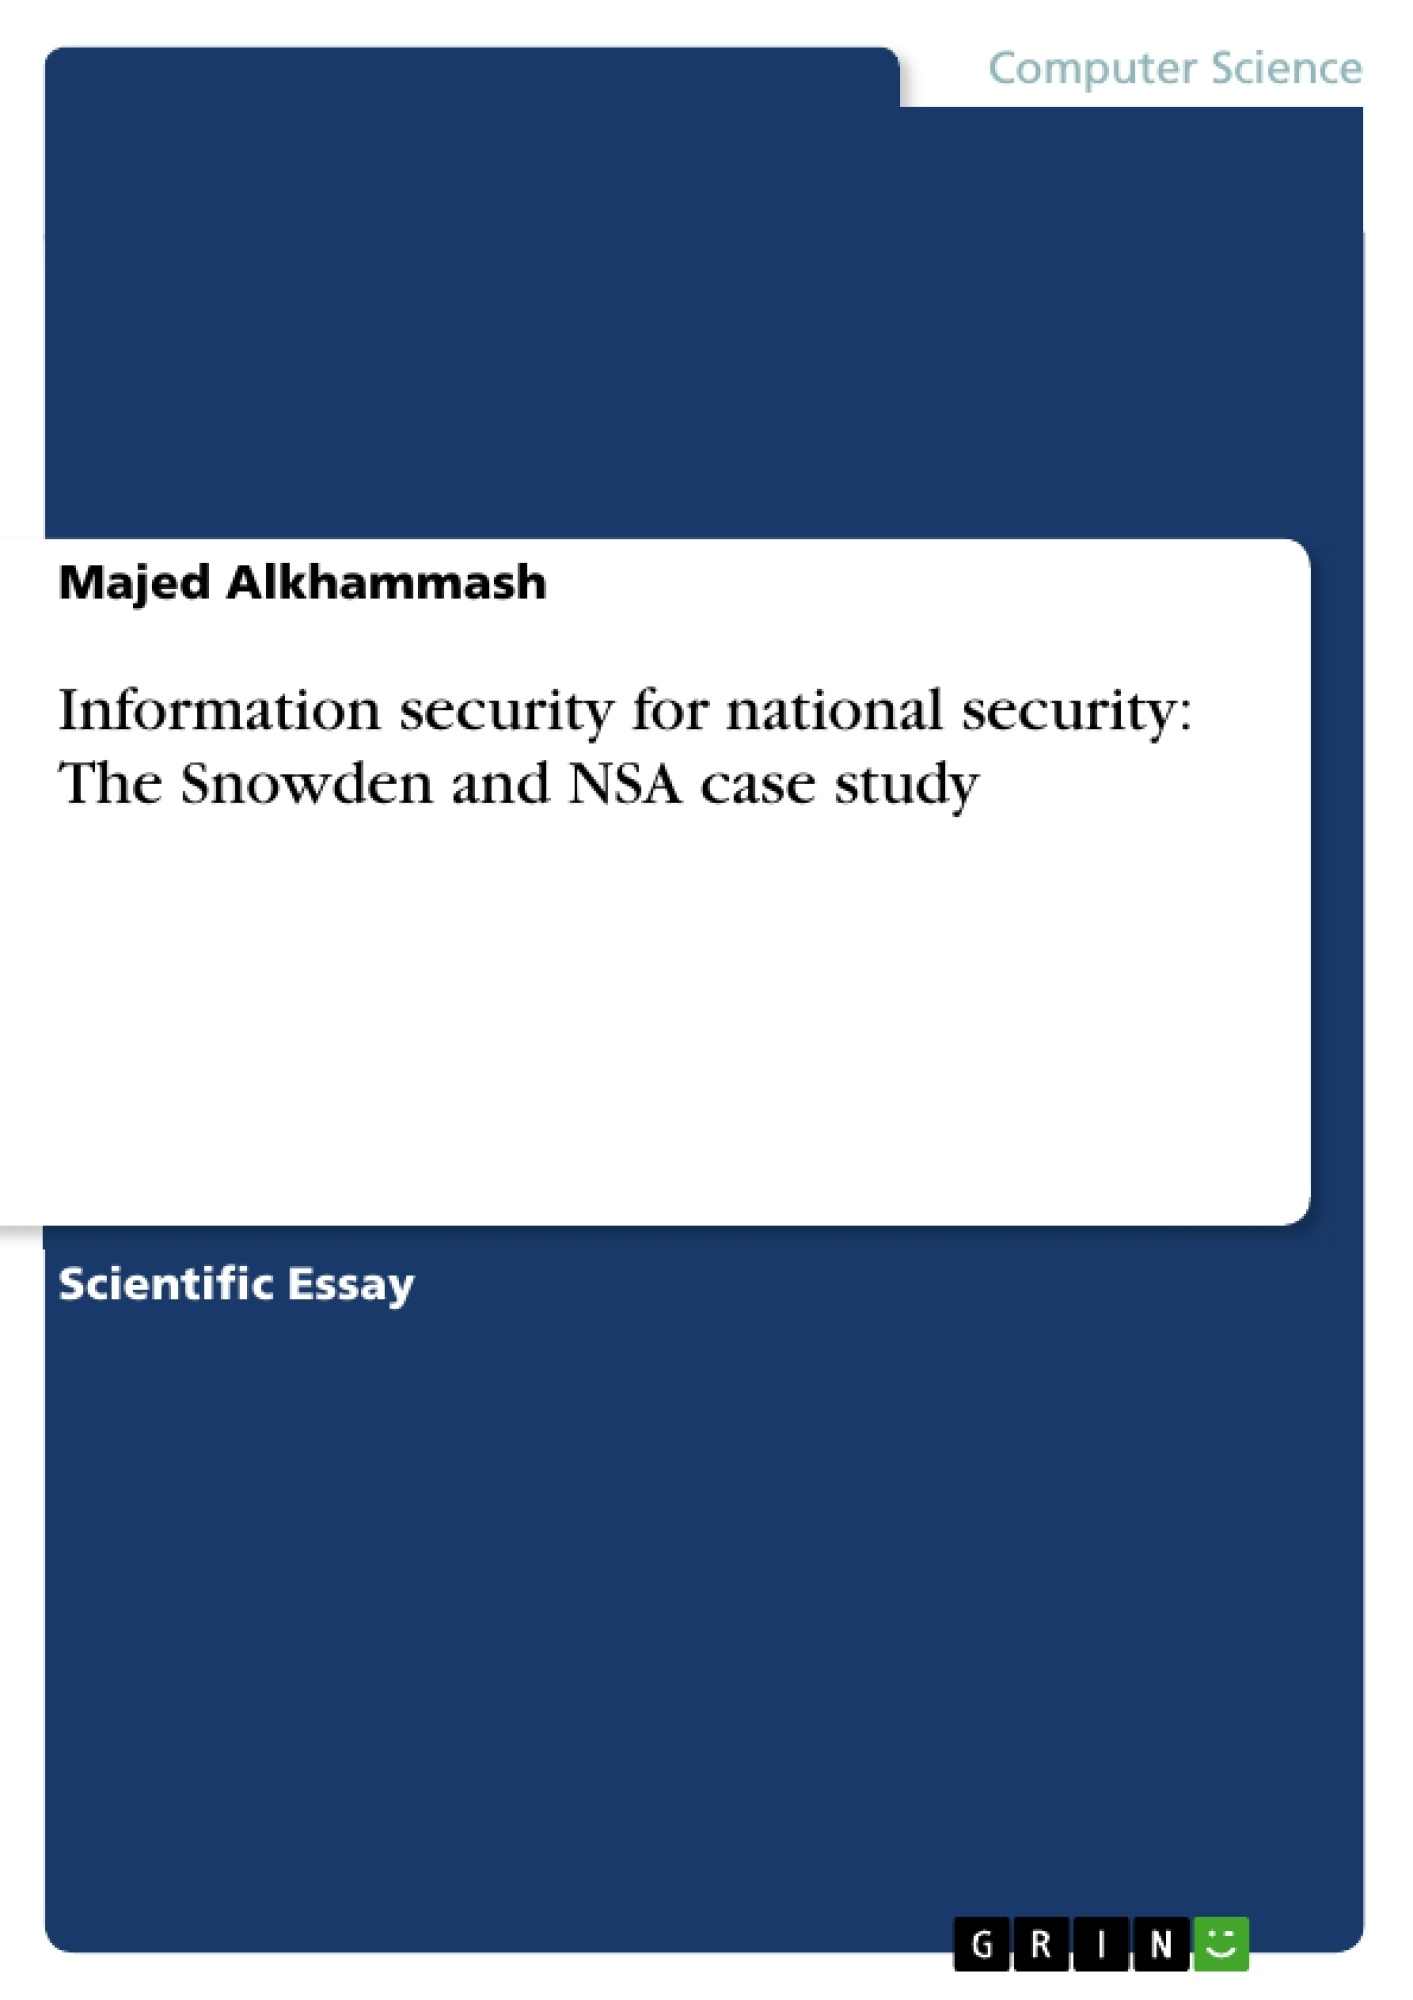 Title: Information security for national security: The Snowden and NSA case study